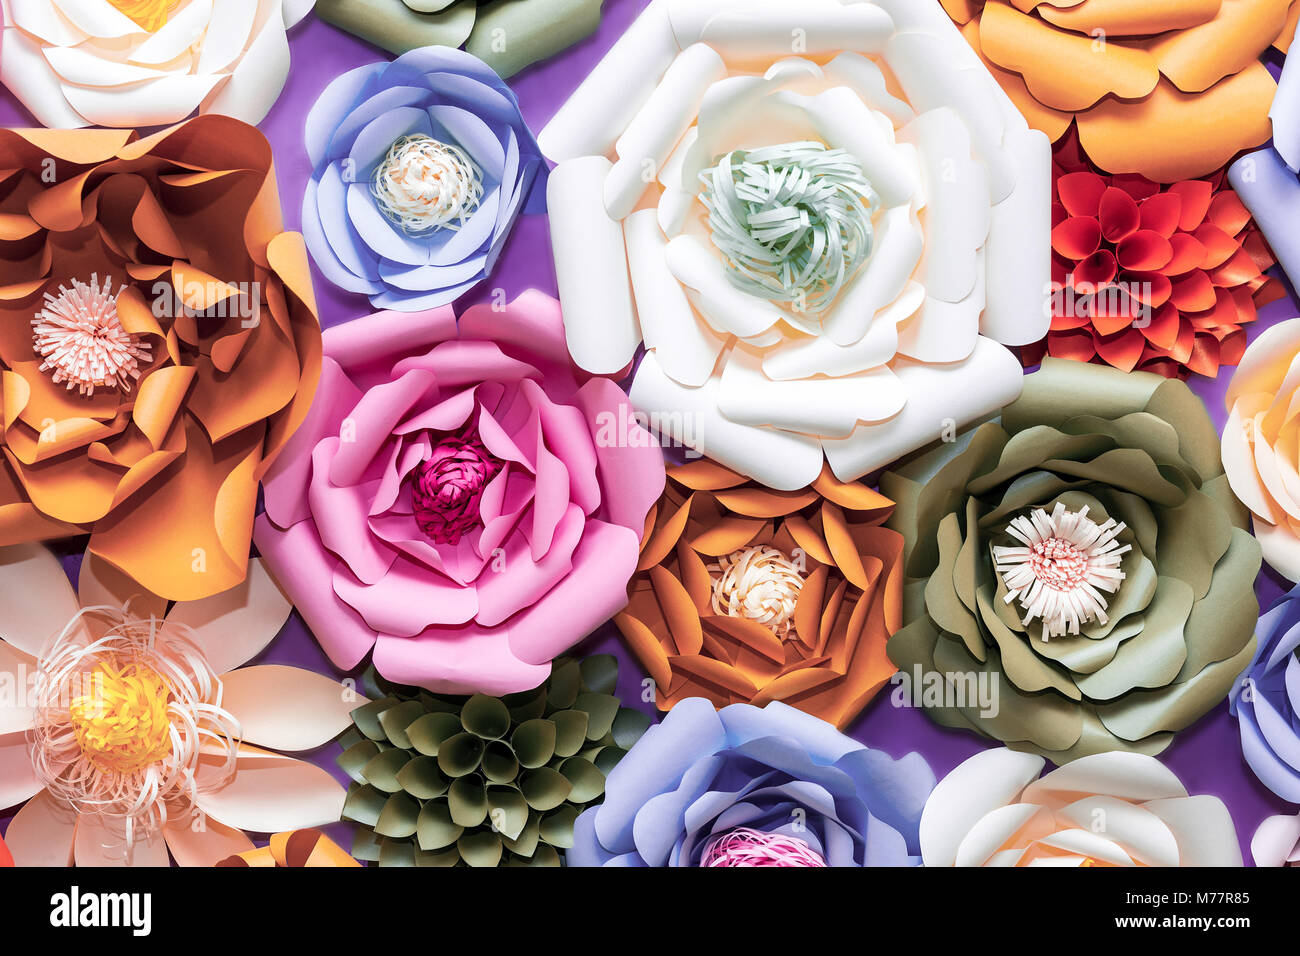 Colorful paper flowers on wall handmade artificial floral stock colorful paper flowers on wall handmade artificial floral decoration spring abstract beautiful background and texture mightylinksfo